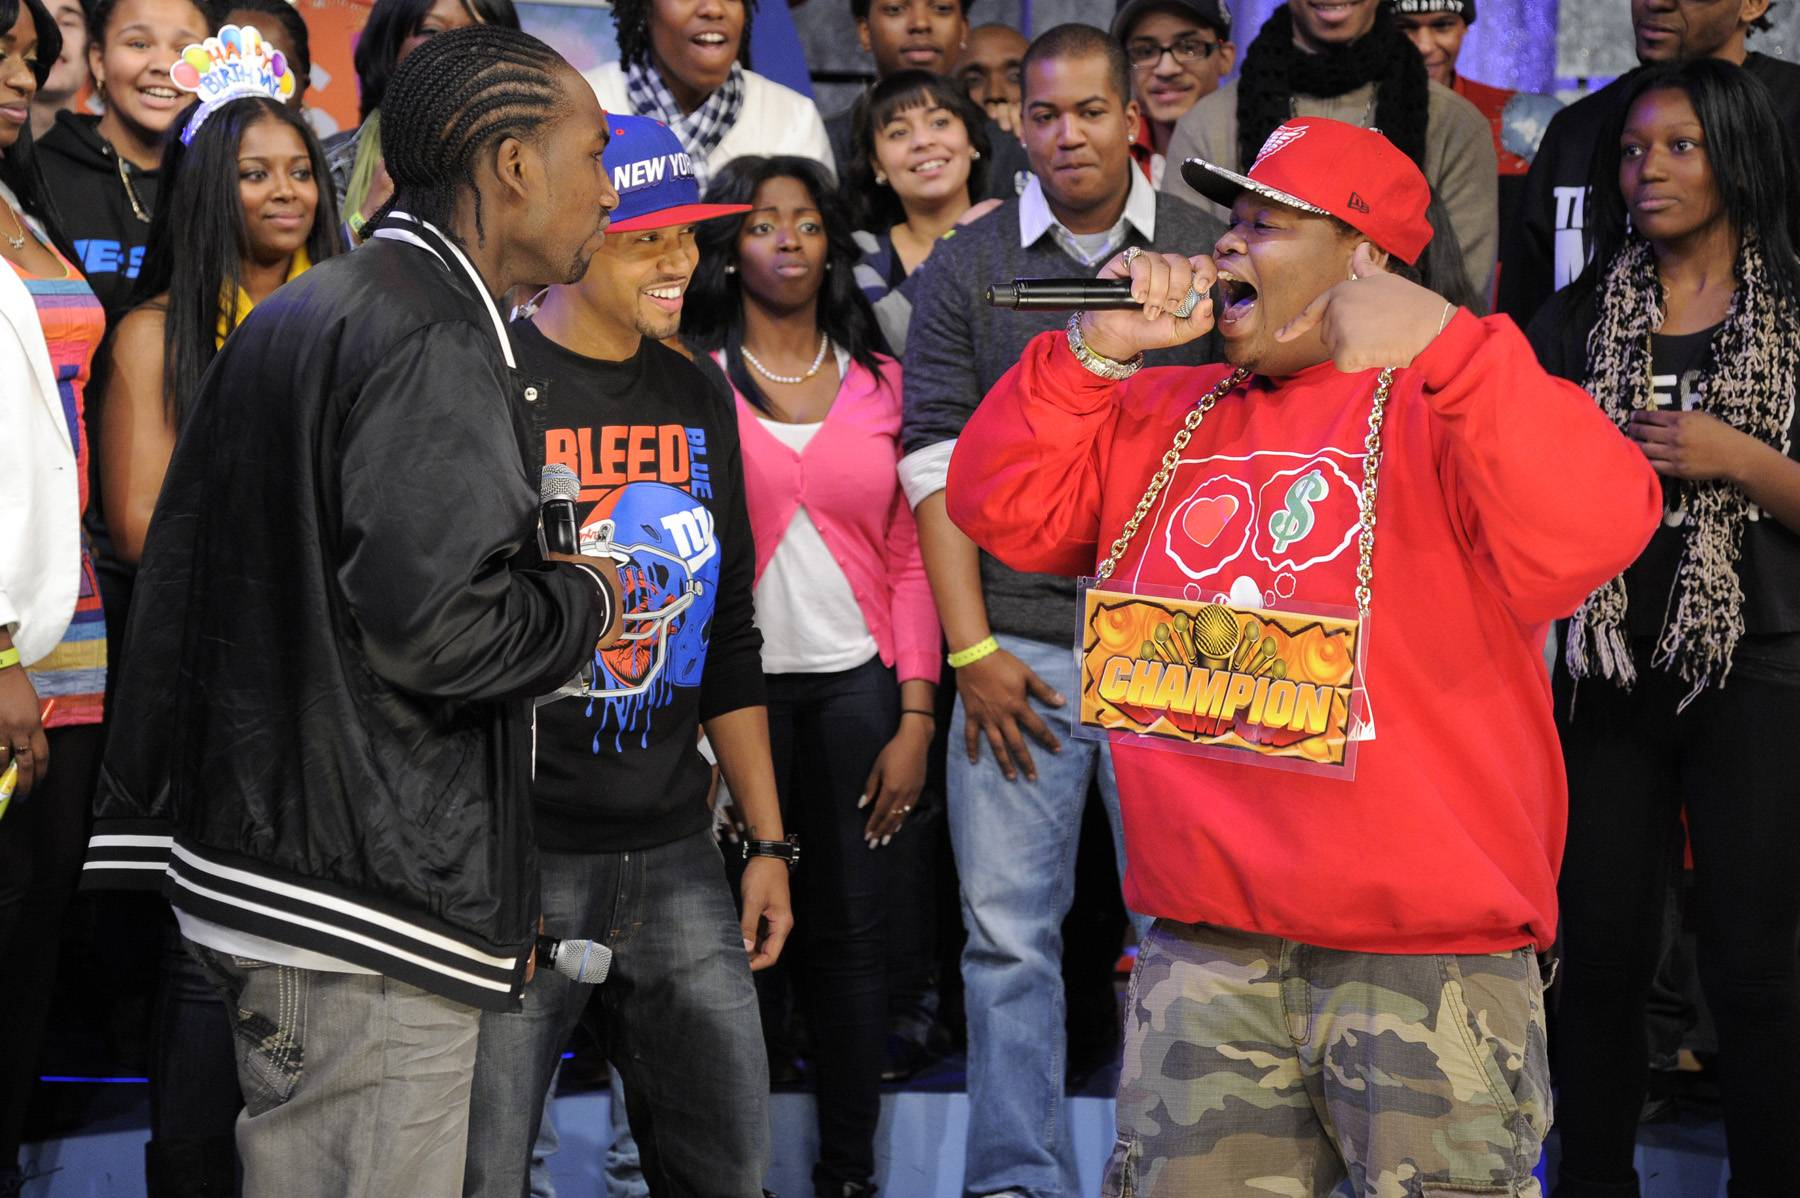 Stop Yelling - Freestyle Friday champion Relly battles Dolo Chillin at 106 & Park, January 20, 2012. (Photo: John Ricard / BET)